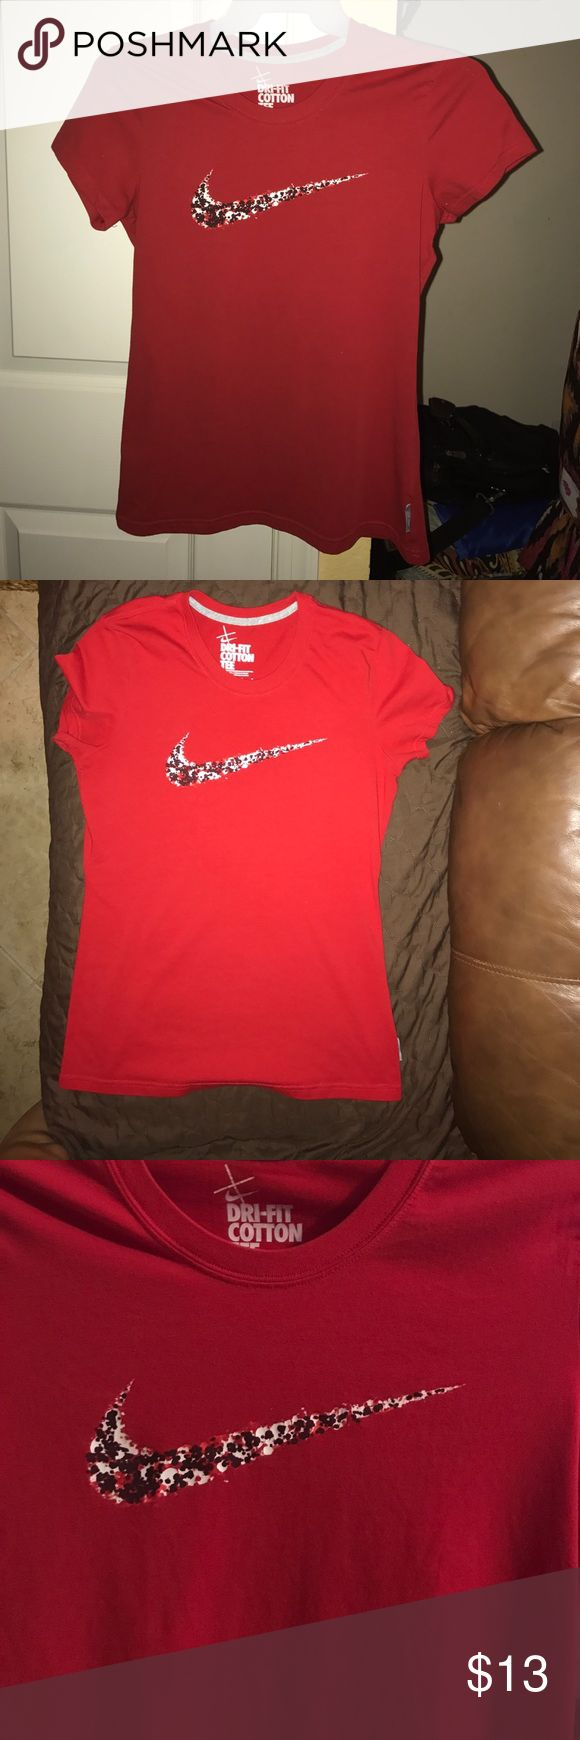 ❤️ Nike Dri Fit Cotton Womens Tee ❤️ Red Nike T-Shirt worn once Nike Tops Tees - Short Sleeve